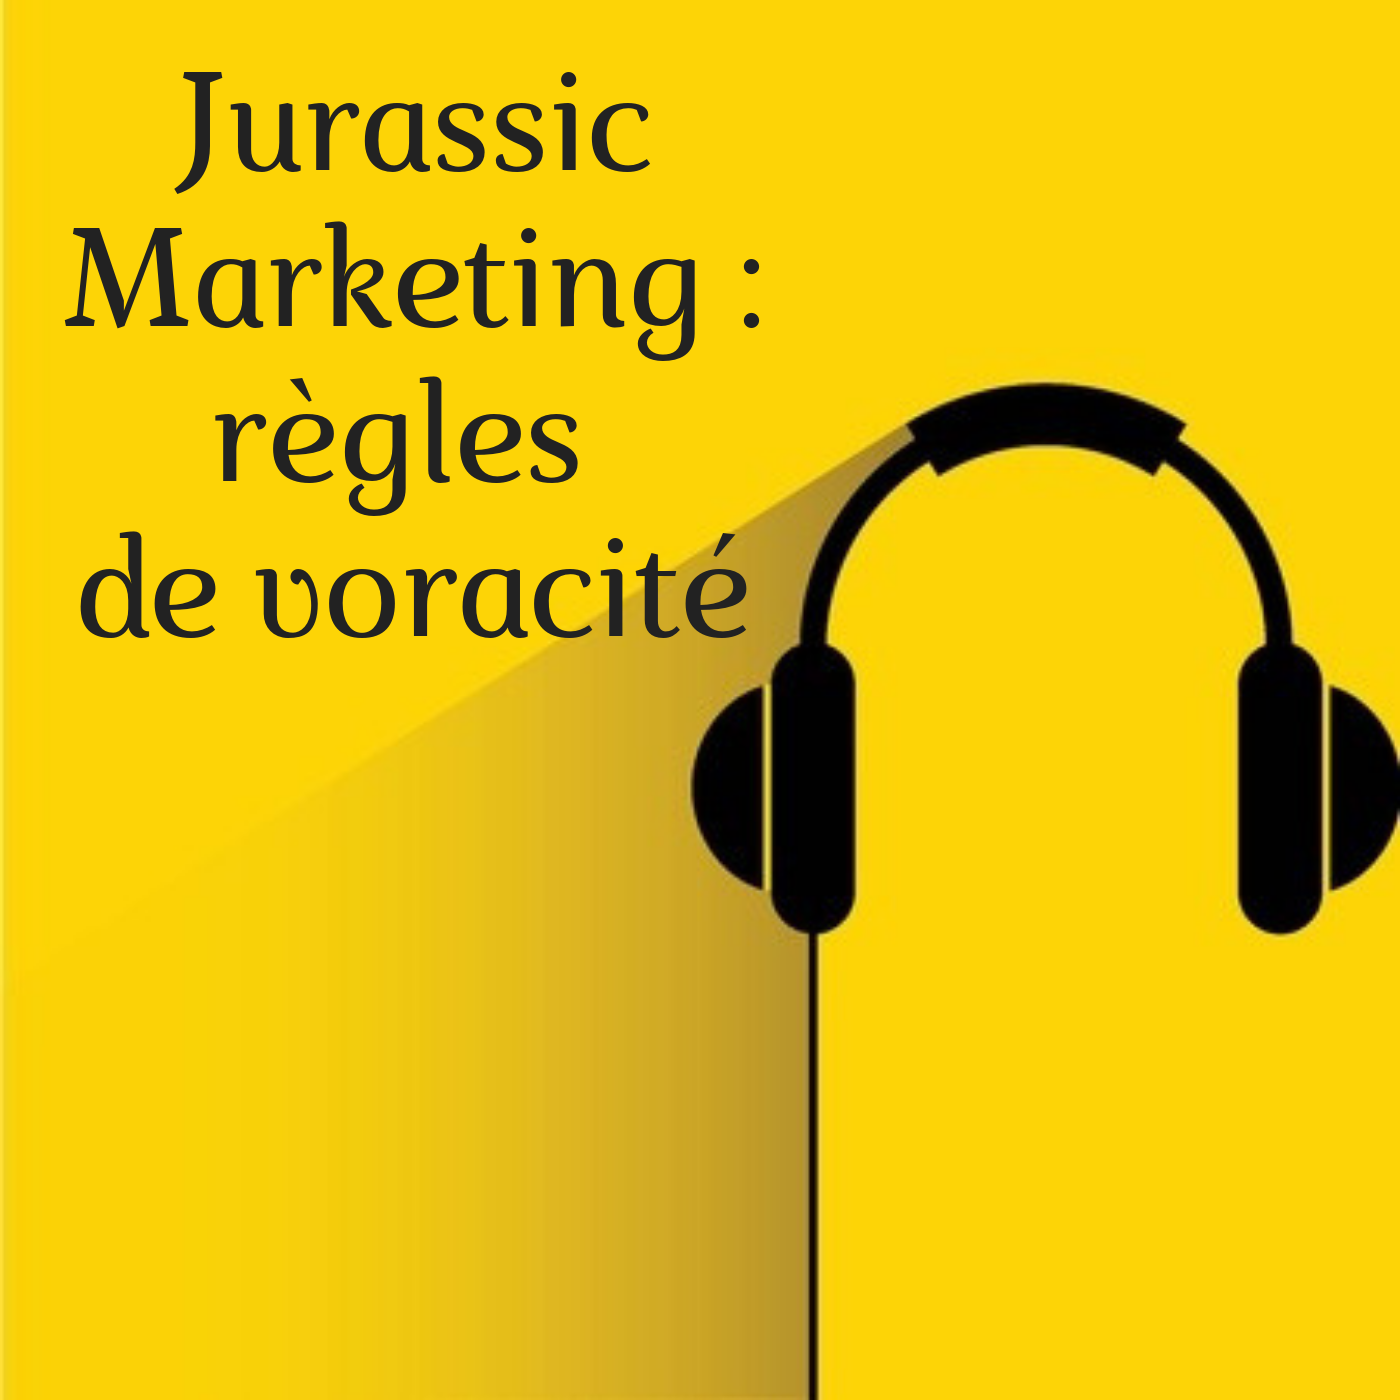 Jurassic Marketing : règles de voracité.